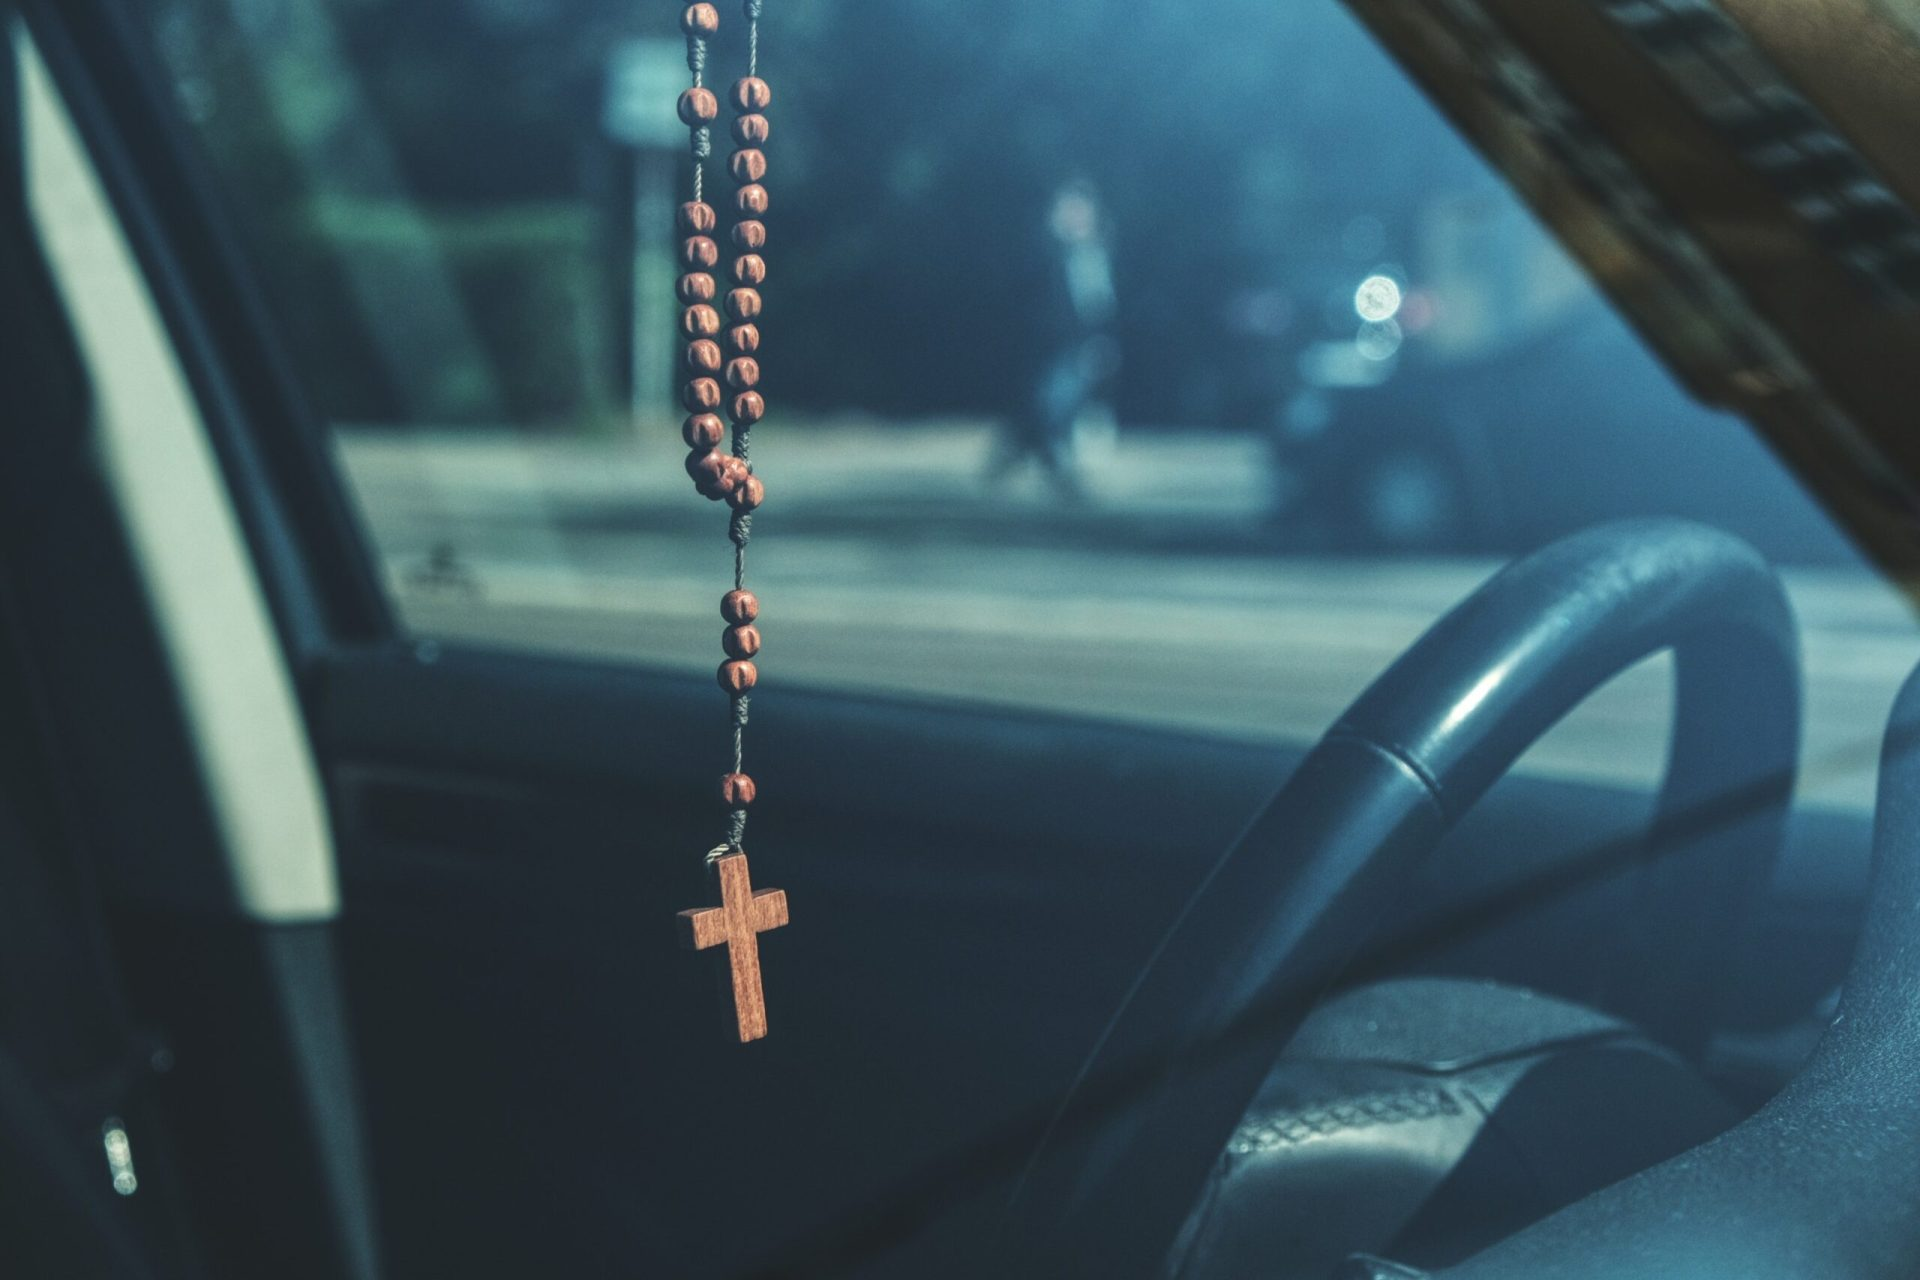 3 Powerful sacramentals to have in your car